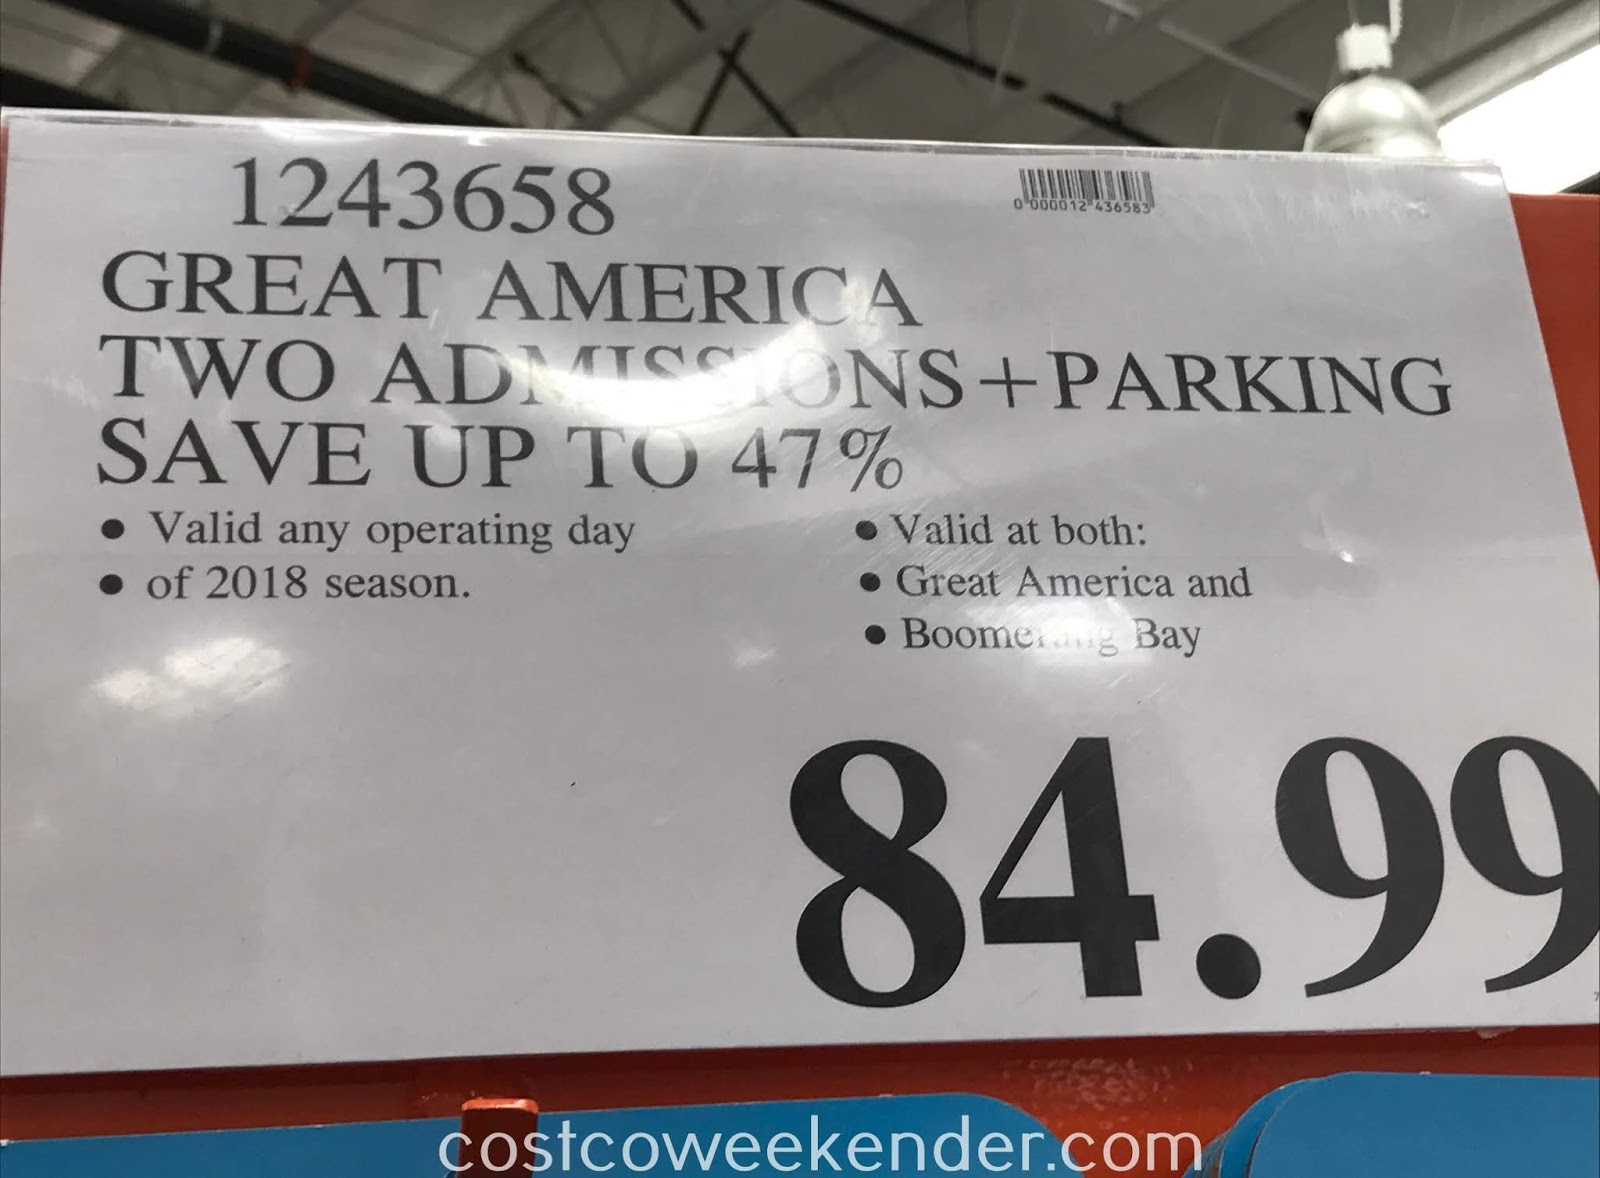 Deal for 2 Great America General Admission Tickets for only $84.99 at Costco